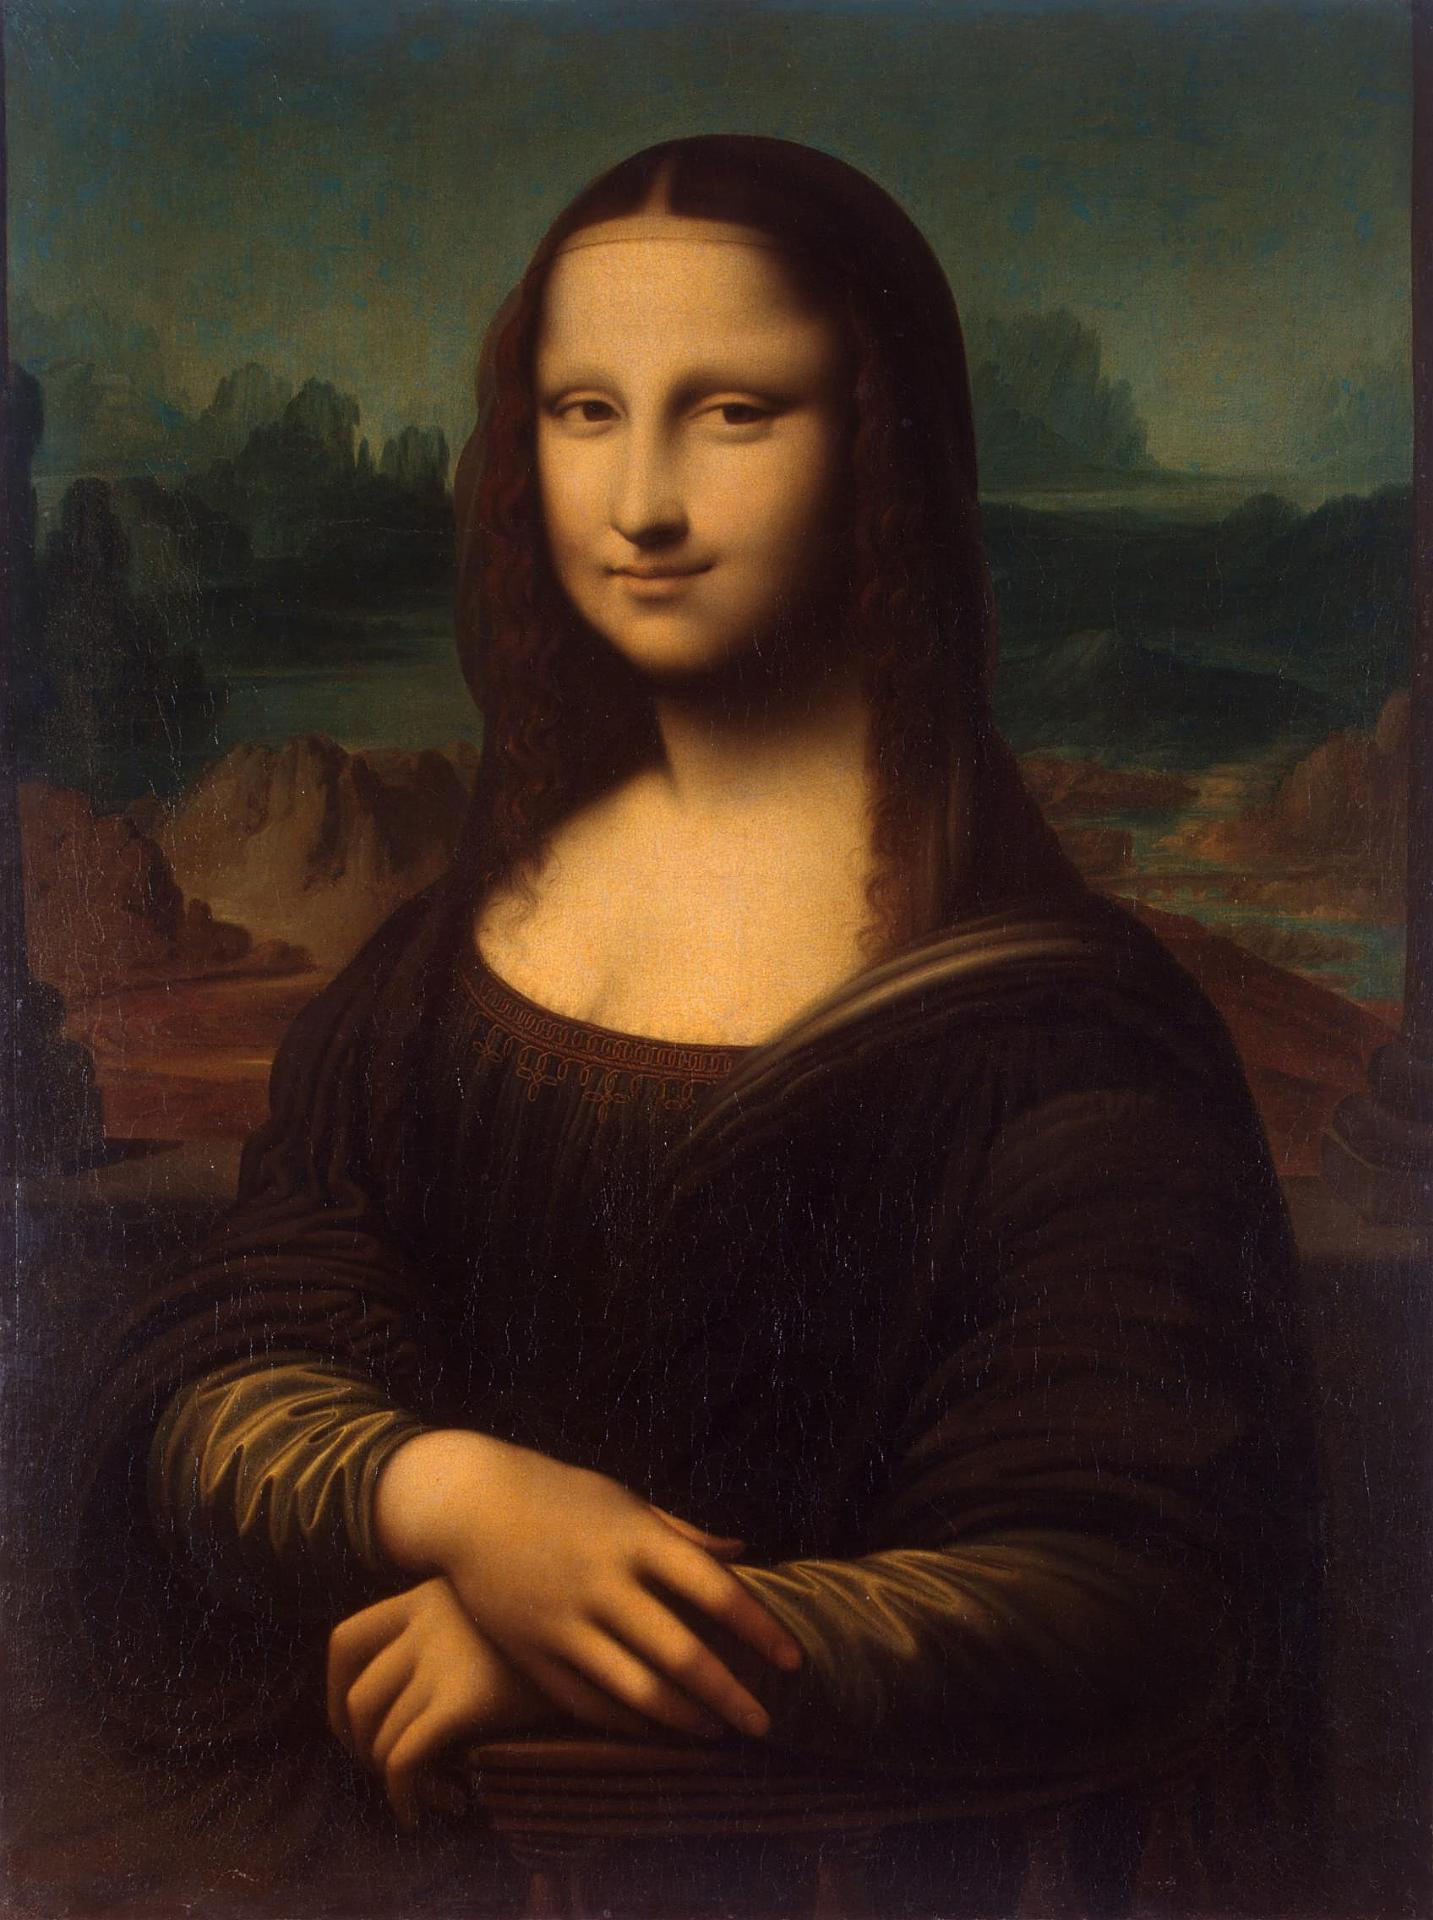 mona lisa on emaze